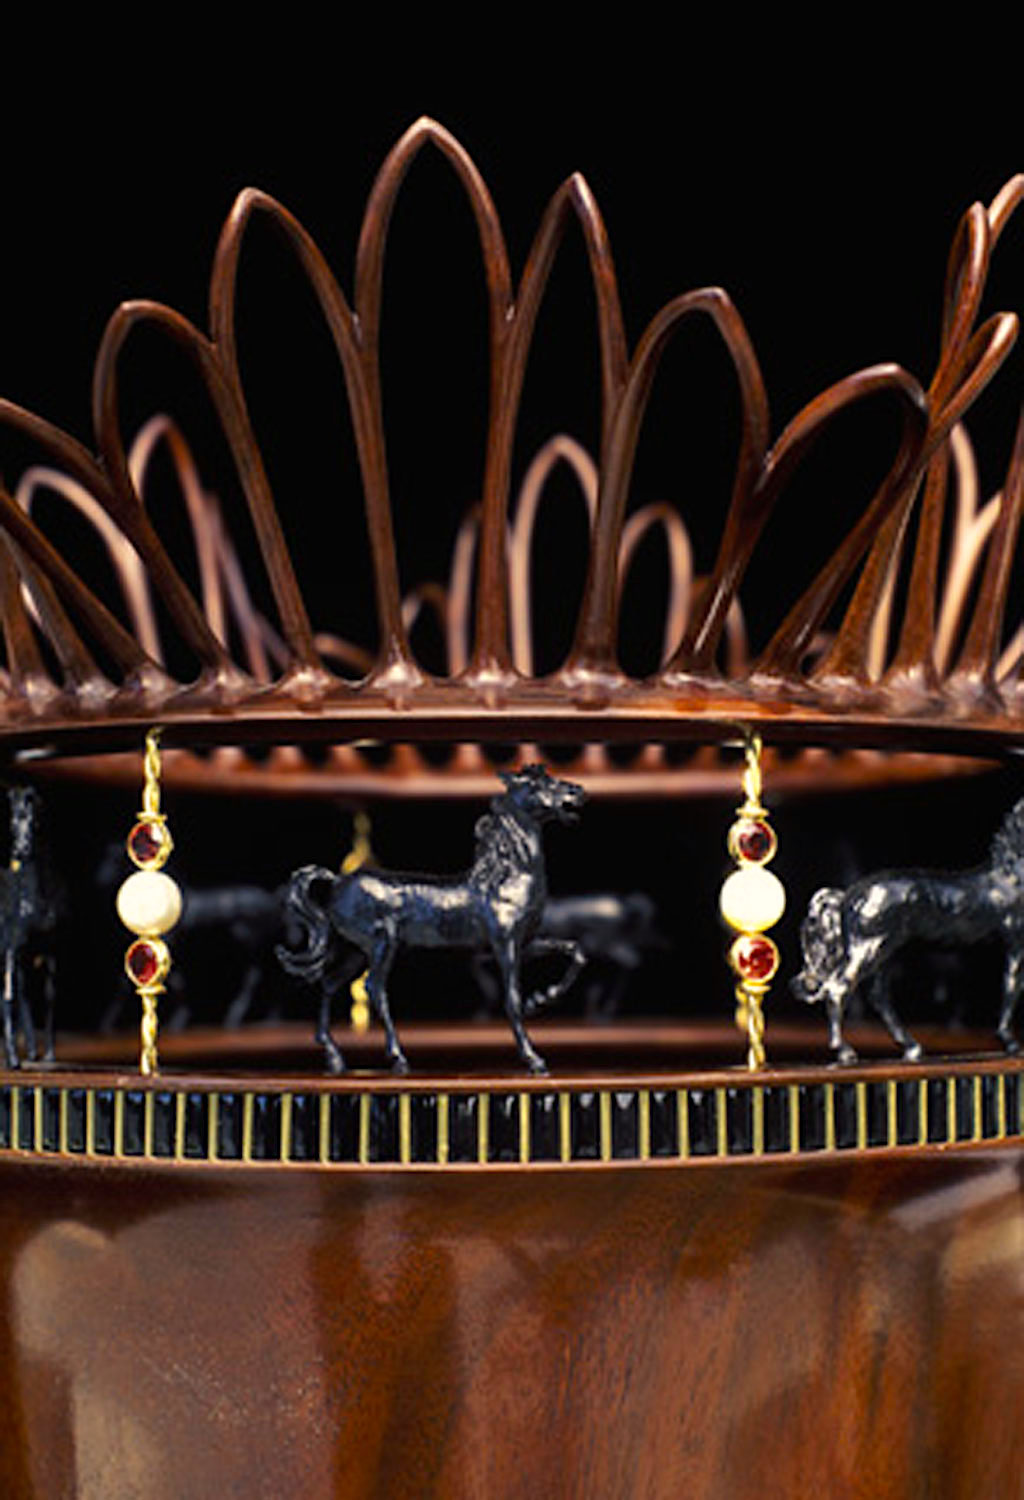 Frank E. Cummings III, Carousel - Age of Awareness close up, 1995, Craft in America